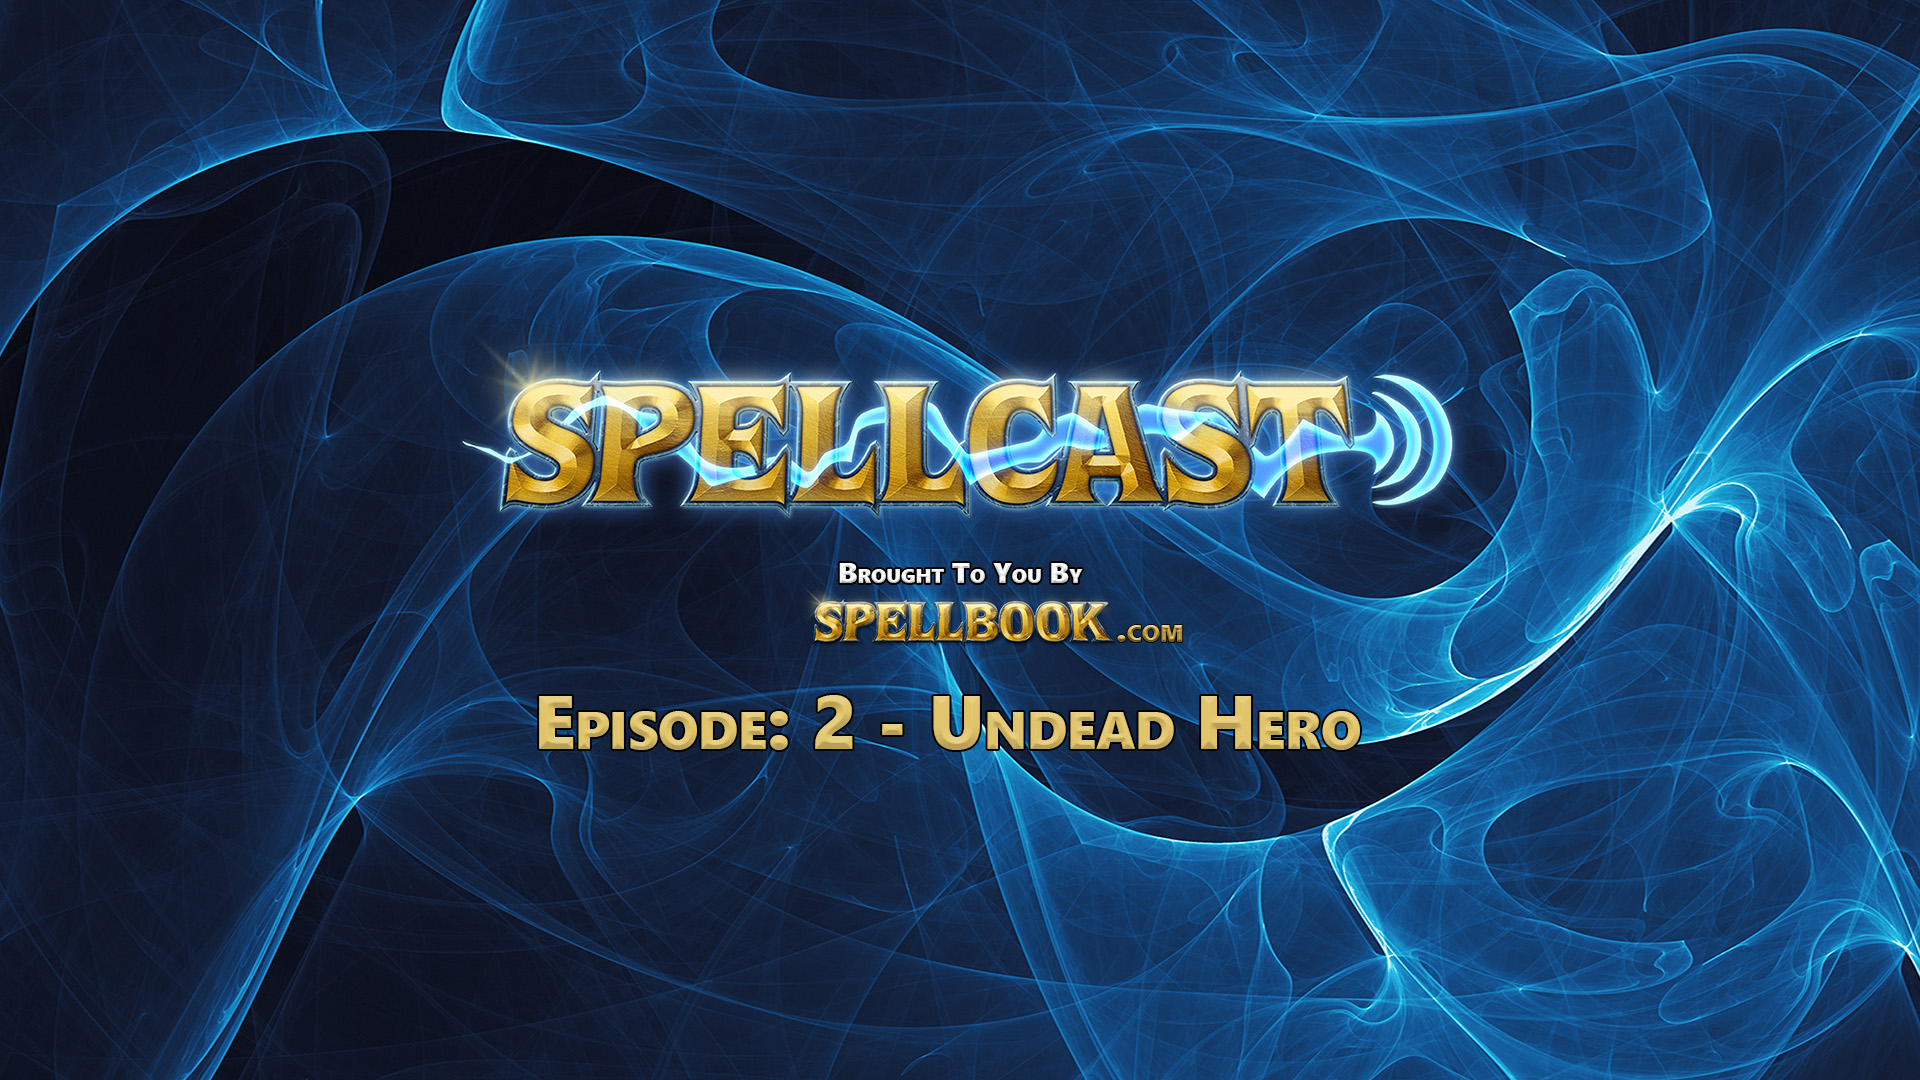 Spellcast Episode: 2 - Undead Hero